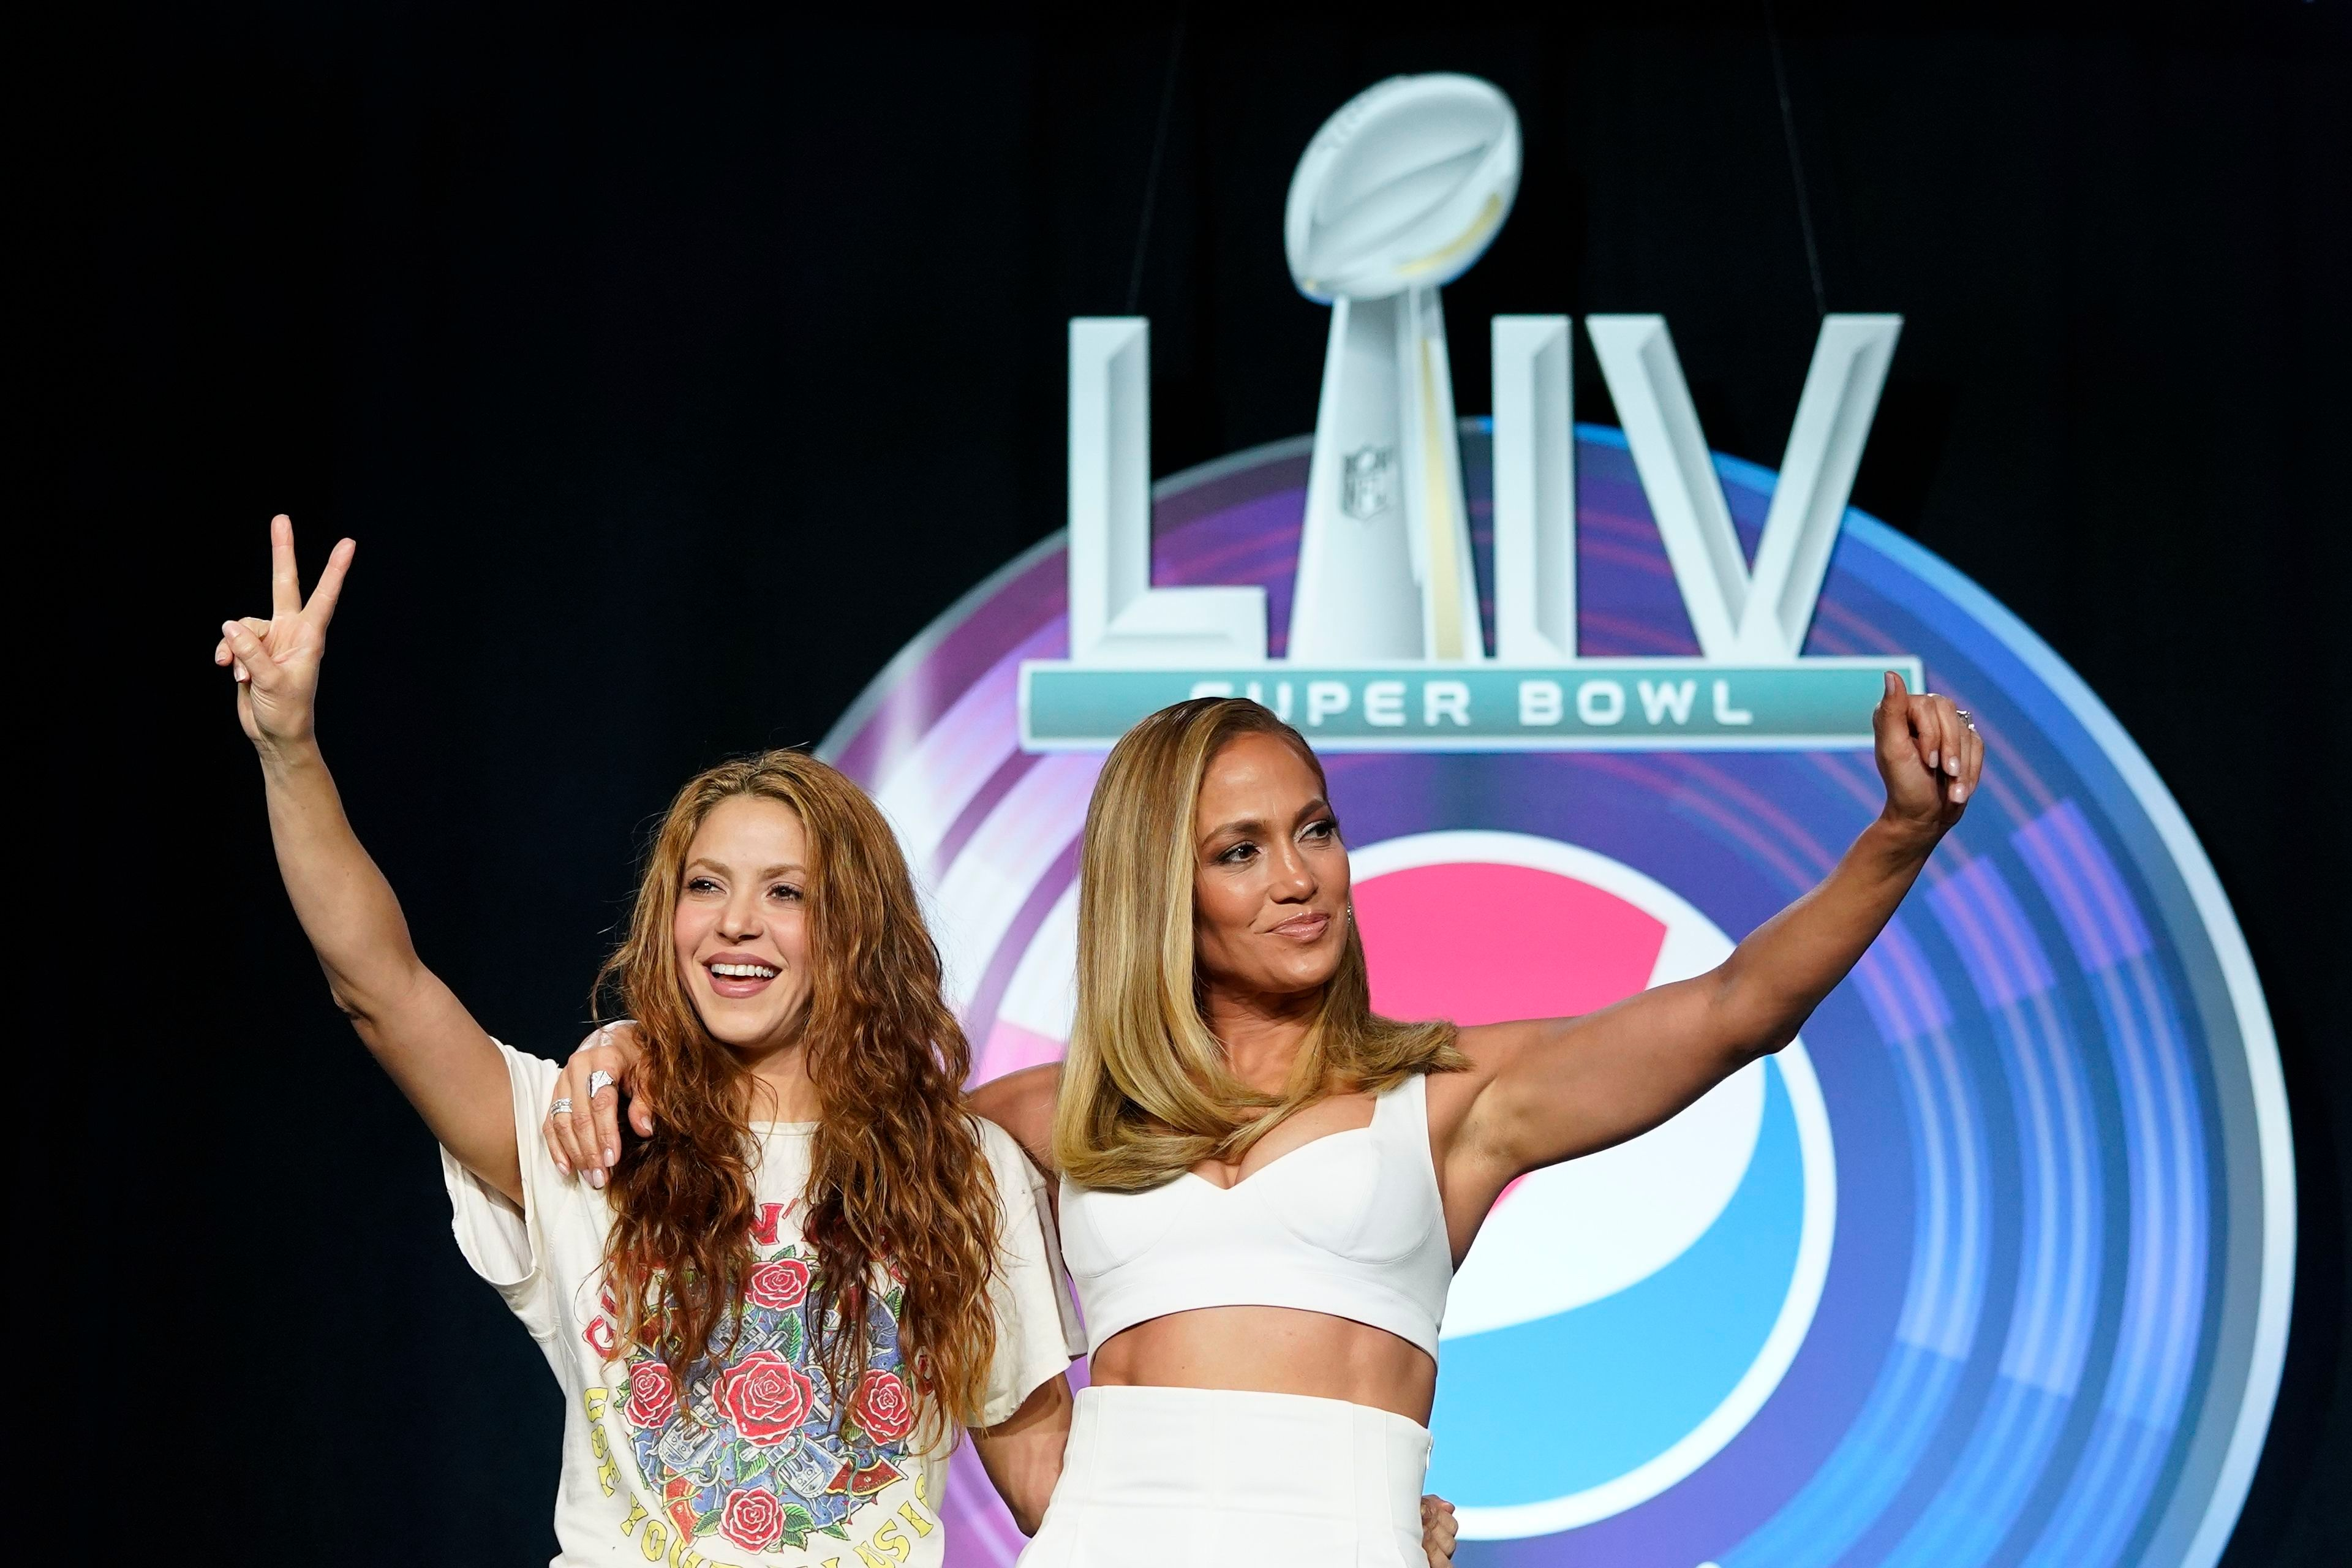 2020 Super Bowl Halftime Show: What to Know About Jennifer Lopez and Shakira's Performance